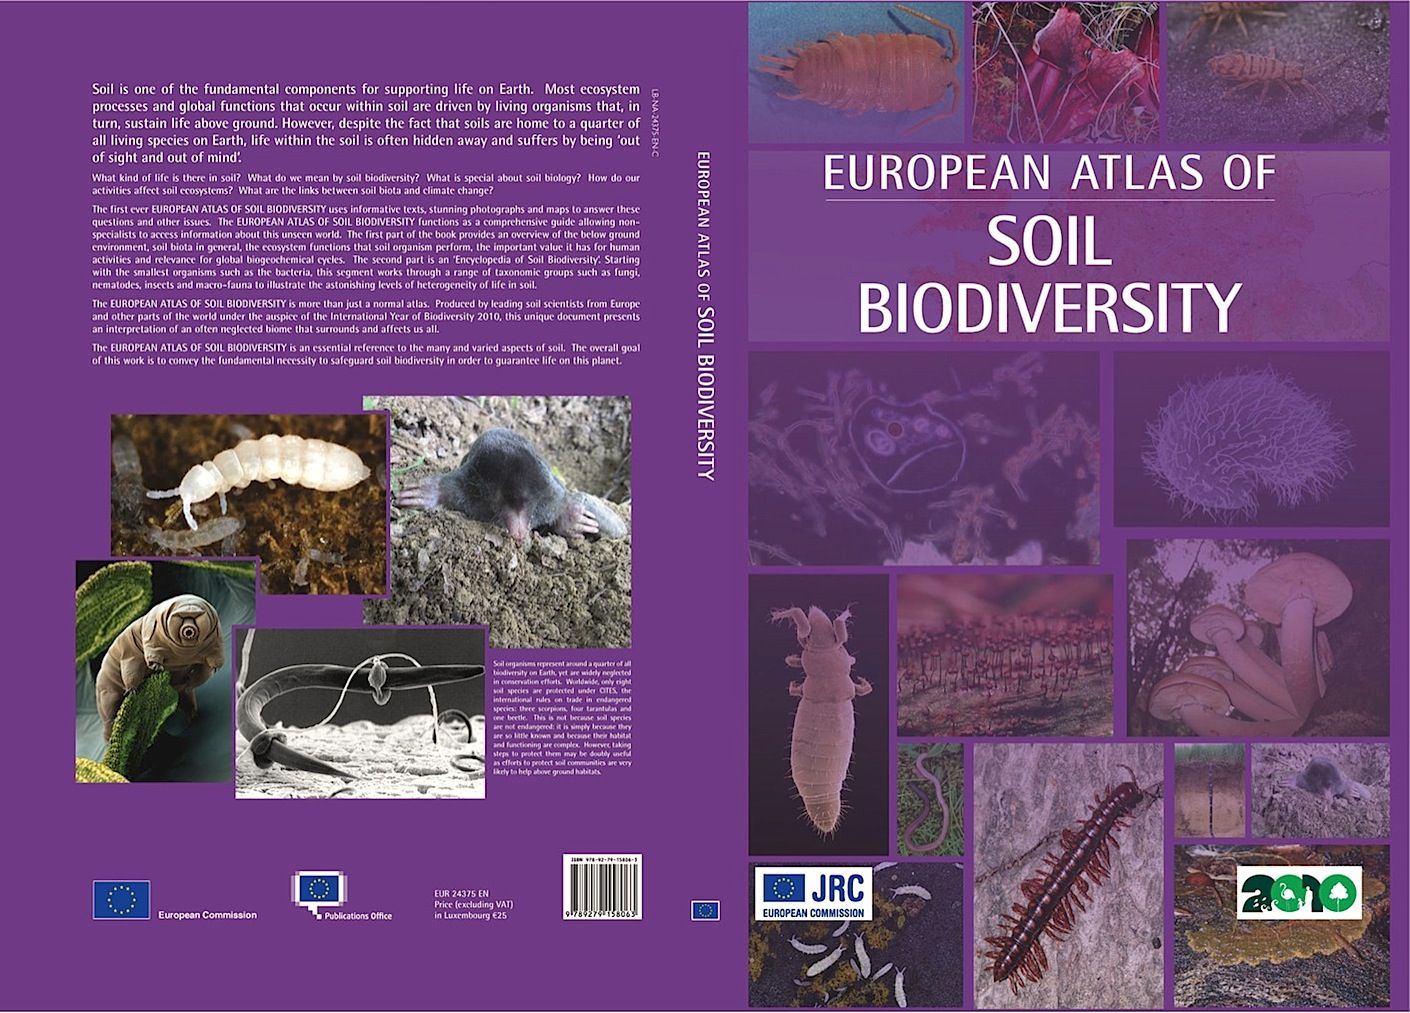 The Atlas    can be downloaded from the website.